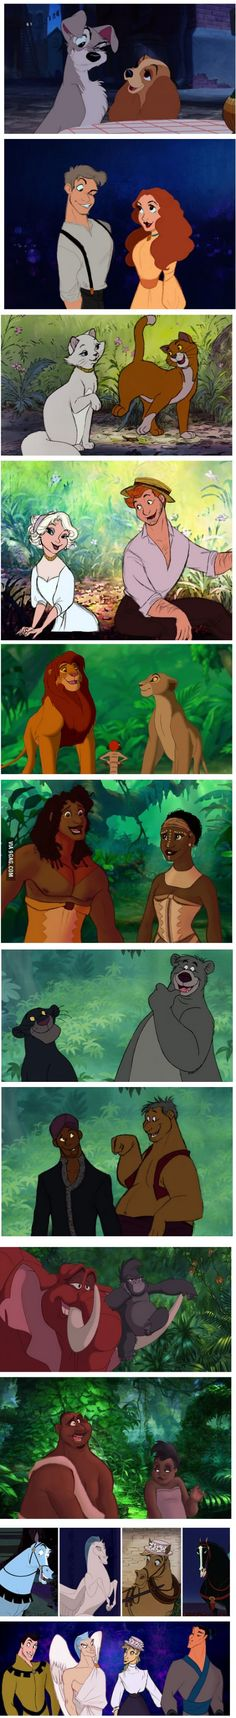 Disney animals and their human form